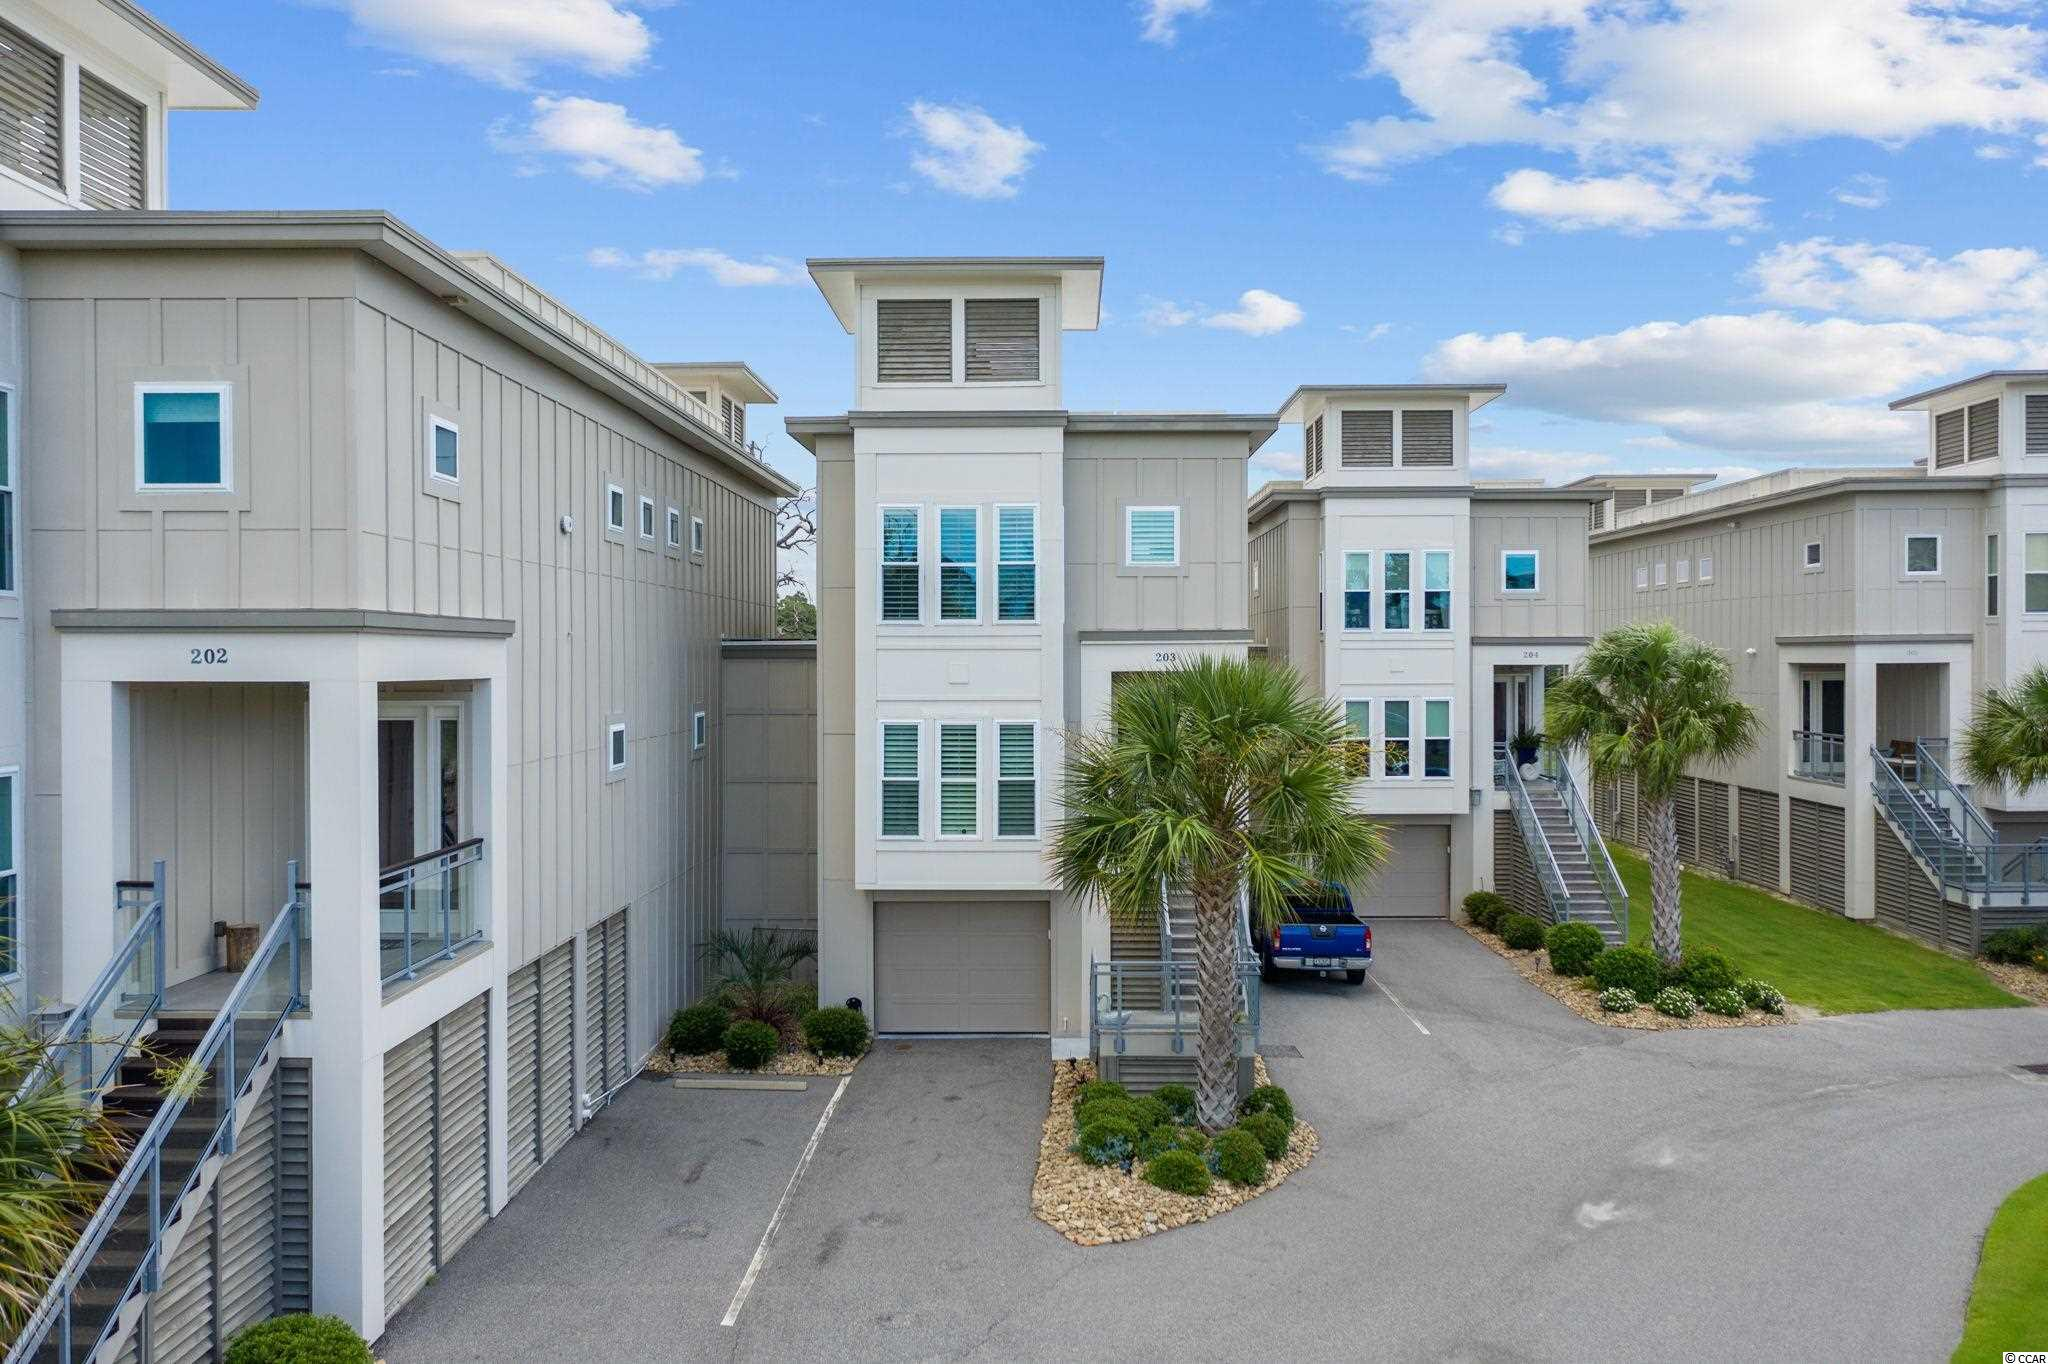 Magnificent like new home- tucked away in a small, gated community of luxury town-homes.  Across the street from Barefoot Landing, and steps to the sparkling blue Atlantic.  This immaculate like new 4 bedroom 4-1/2-bathroom Town-home is ready for you to start living the beach life.  This three-level home starts with the garage on the first floor, with a half bathroom, and 3 extra storage closets for everything you might need to put away, plus a humidifier inside the larger storage closet, there are two covered gated areas for recreation, either the children or pets be protected from the pool, cars, or sun. This covered area can be closed off by roll up door. The extra-large garage which has Hardy Board inside as well, plus has enough room for 2 cars and 2 golf carts to park. Your private saltwater pool overlooks the magnificent marsh and exotic wildlife of beautiful birds and palm trees, offering natural gas hook up for the fire pit and the grill,  with a spiral staircase that can take you up to the main living area, or you can take your private elevator or regular stairs up to your first floor living space, with a bedroom or you could use as an office and full bath offering a standalone bathtub, and shower, laundry room, the gourmet kitchen with natural gas stove and farmers Stainless steel sink, beautiful cabinets and a pantry, granite counters, and room to sit and eat at the bar on in the dining area.  Both kitchen and your family room overlook the beautiful views of the marsh with a veranda off from both areas, so you can entertain and be in or outside.  You can then go up the third floor and where you have two master suites and a third bedroom all having their own bathrooms.  Both master suites come with double sinks and walk in closets.  The Grand master has a veranda right off from the bedroom to enjoy the views. This home comes partially furnished, the extra fridge in the garage will stay for your convenience.   The home comes with Plantation shutters on all